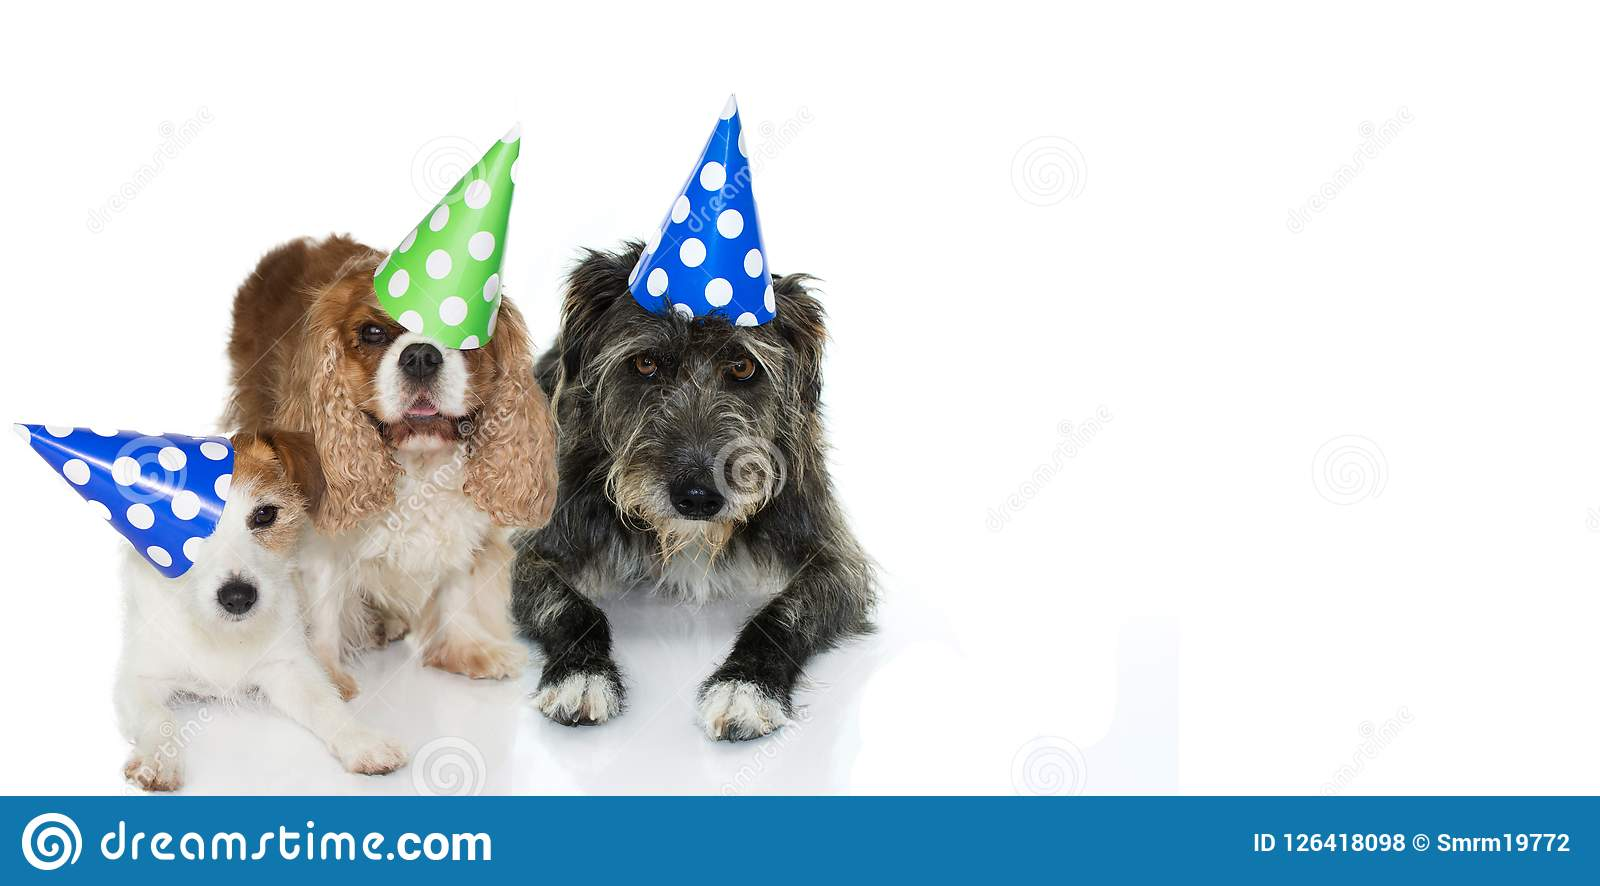 TREE DOGS CELEBRATING A BIRTHDAY PARTY WEARING A BLUE, GREEN AND